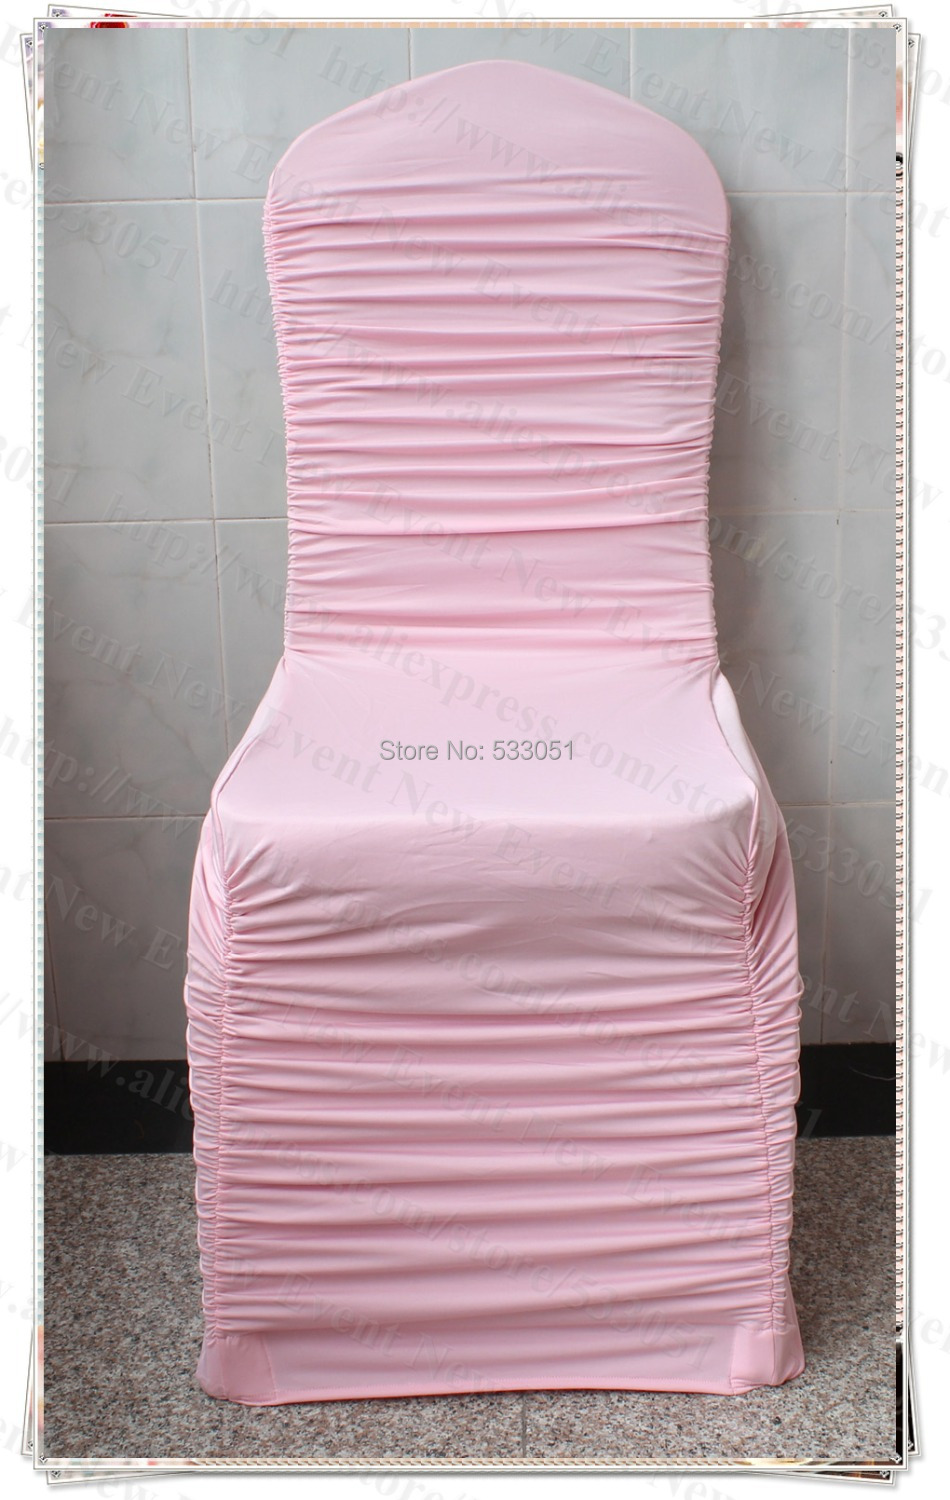 light pink spandex chair covers modern computer hot sale color ruffled cover ruffle lycra for wedding decoration party